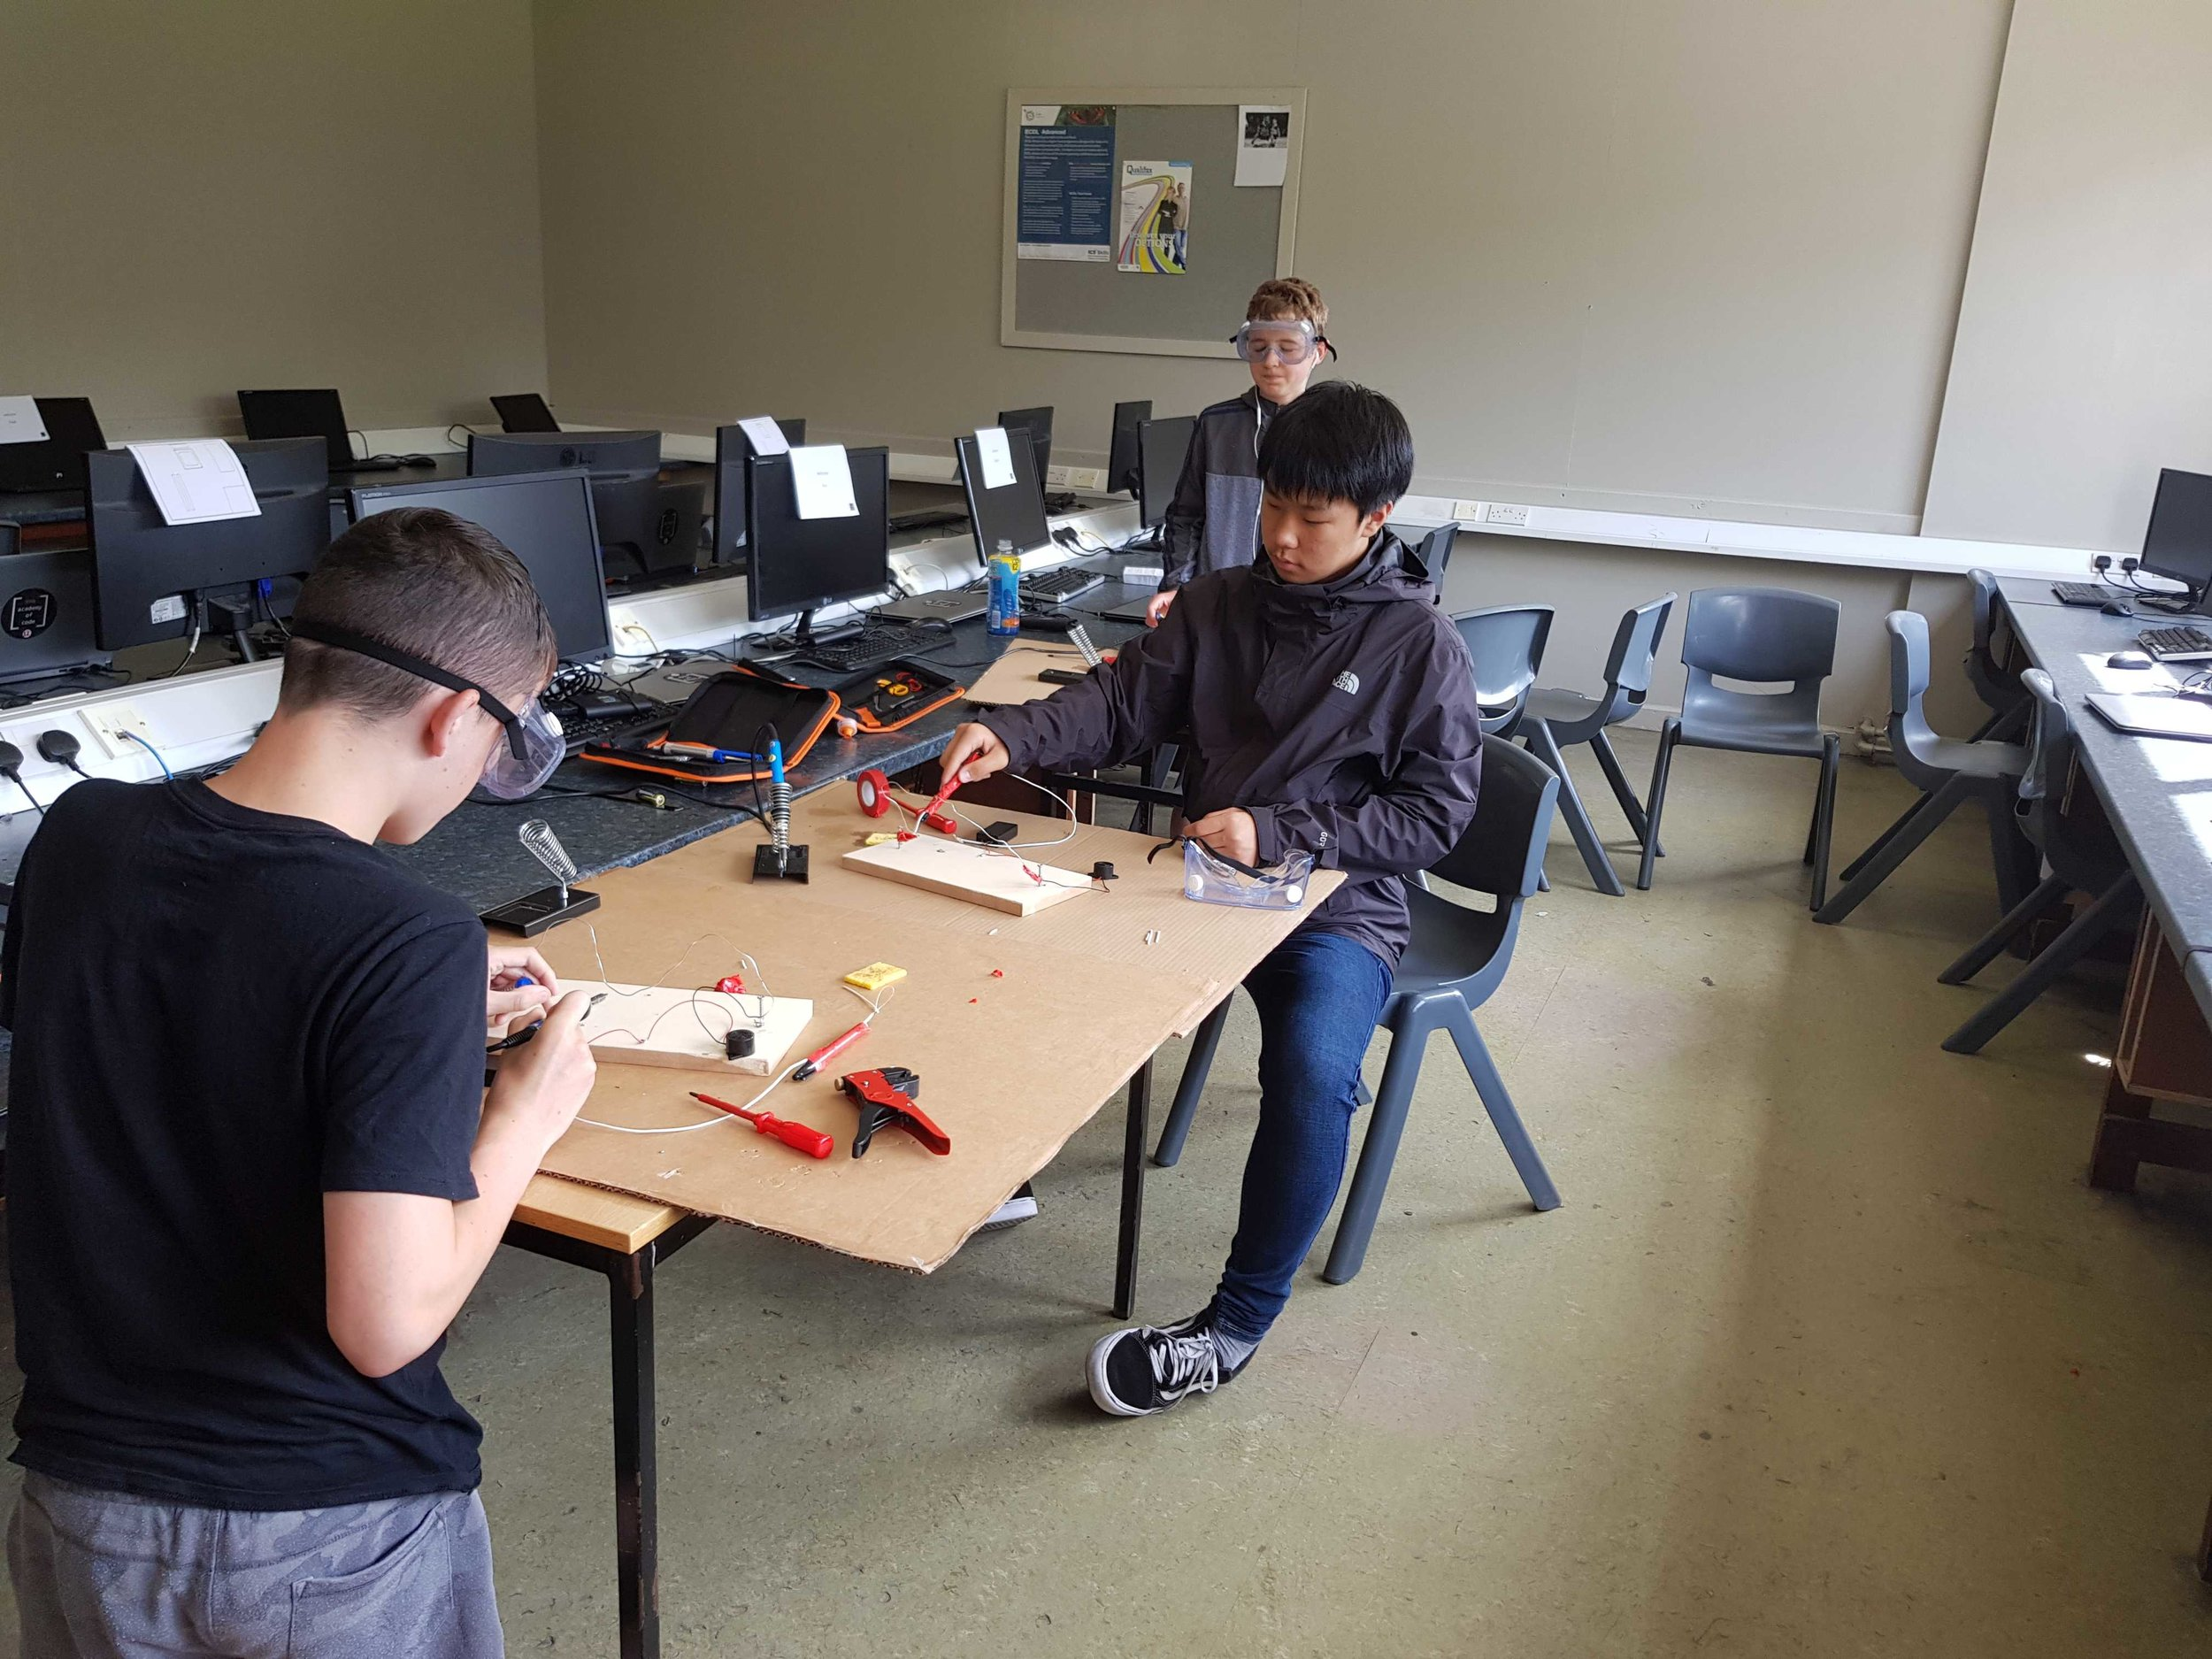 Soldering at one of our summer 2019 camps in St. Paul's College, Raheny